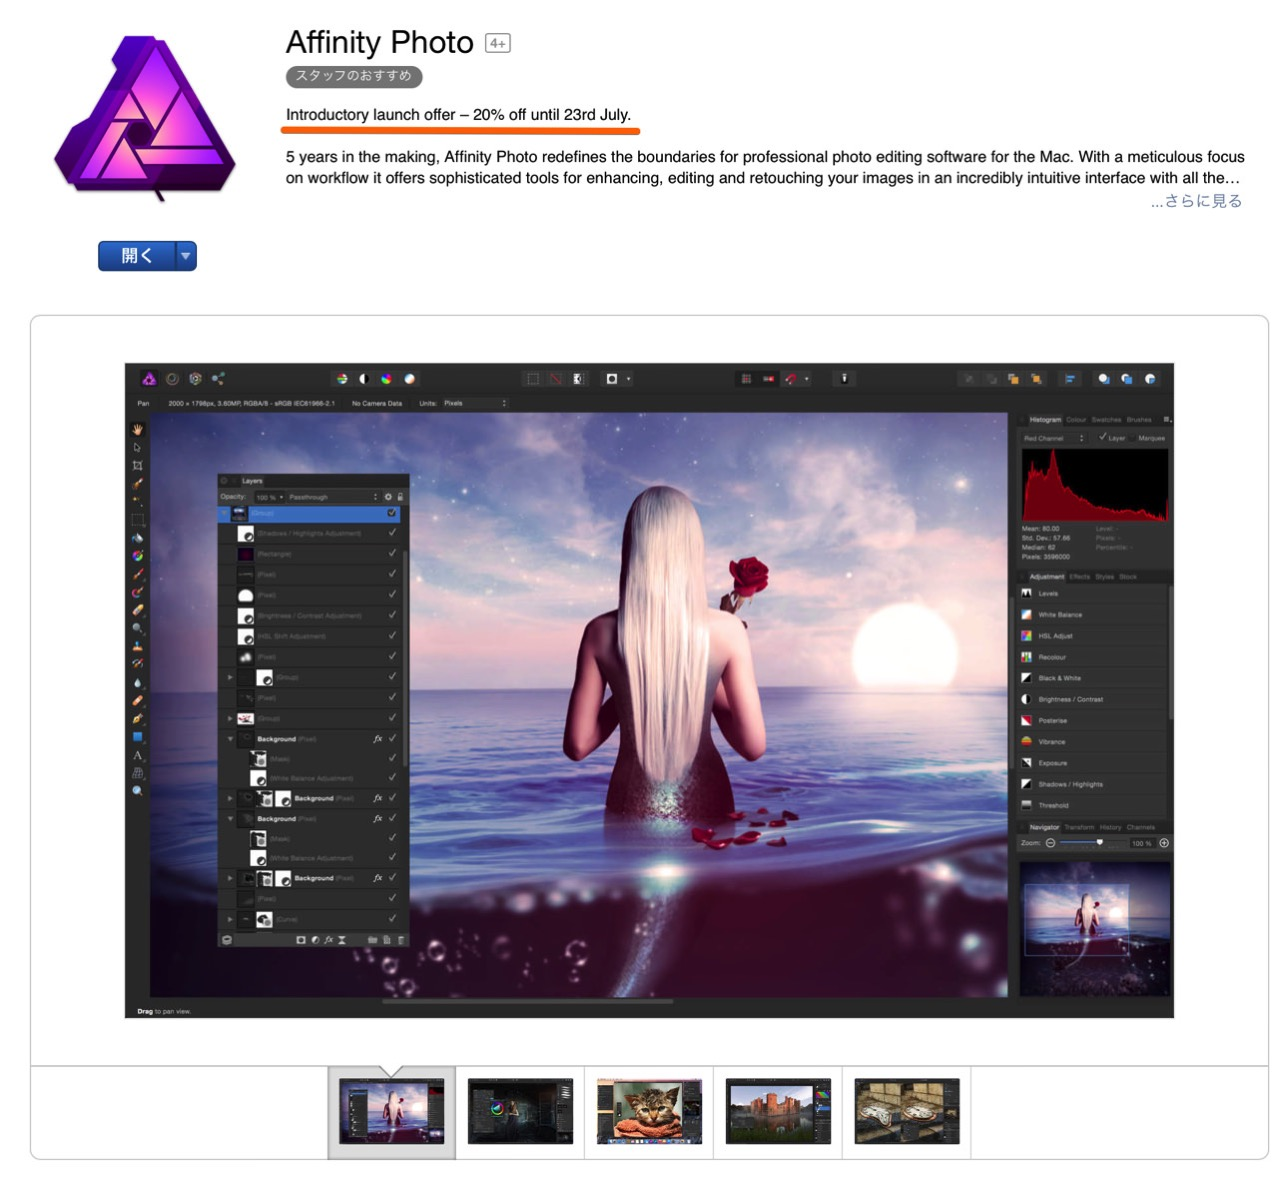 Affinity photo release commemorative price until today2